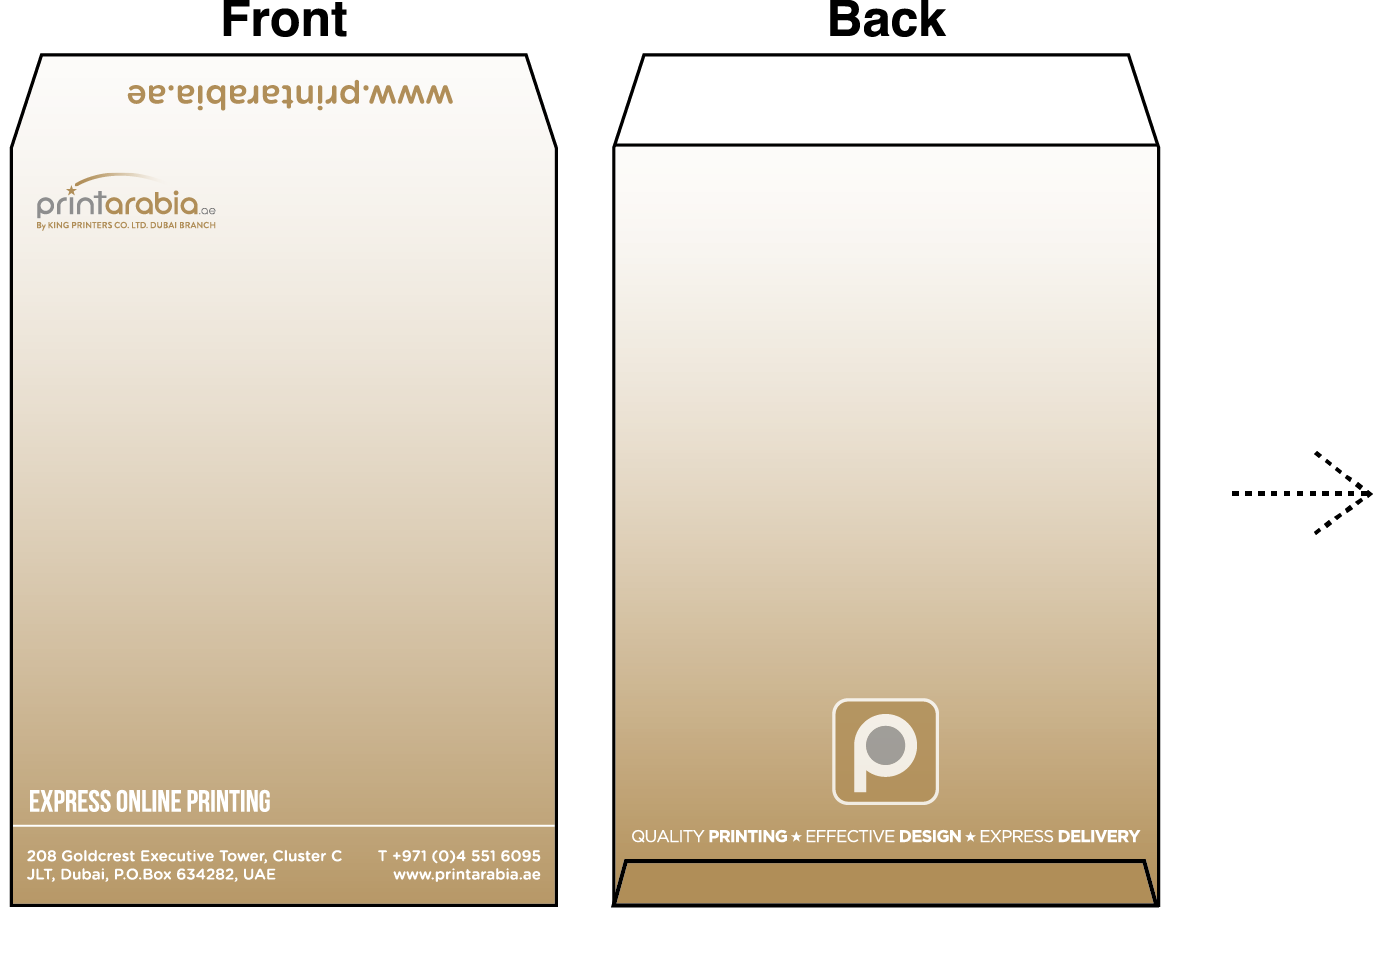 Custom Envelopes - Do's and Don'ts when laying out your design 05 Image